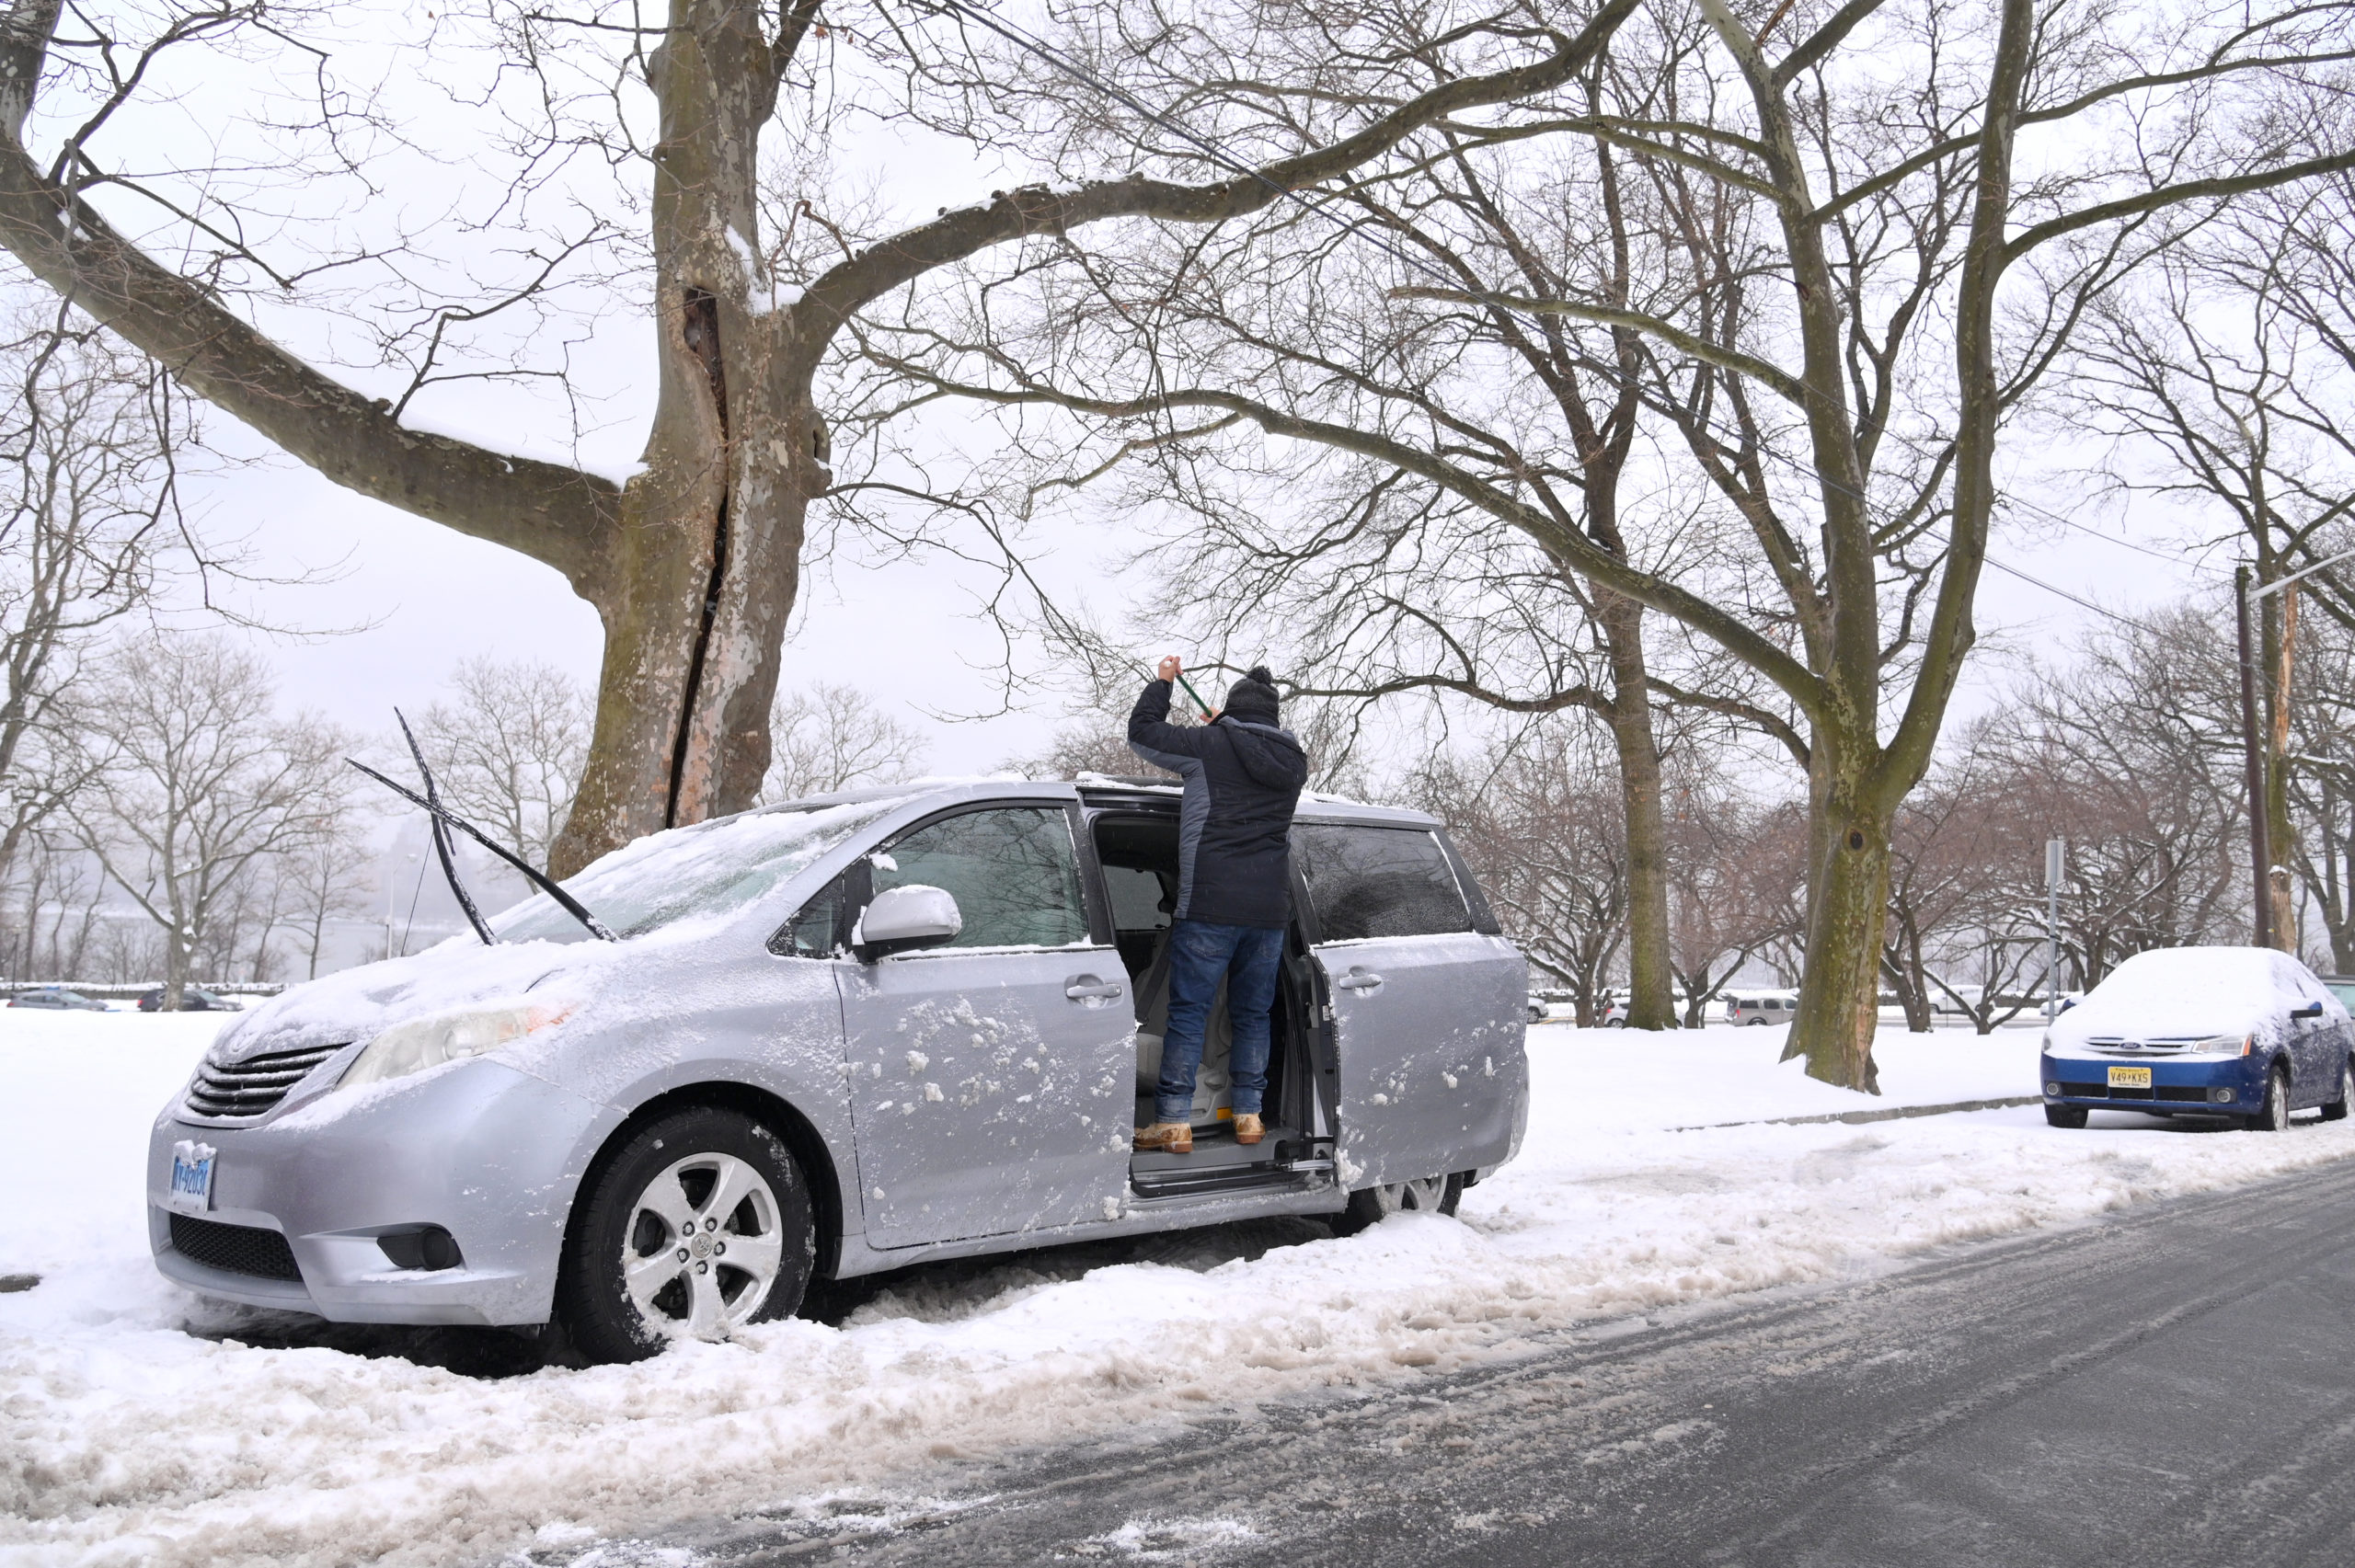 NORTH BERGEN, NEW JERSEY - FEBRUARY 18: A man brushes snow off of the roof of his car at James J. Braddock Park on February 18, 2021 in North Bergen, New Jersey. Snow accumulation has shut down more New Jersey vaccine sites and has been a strain on timely vaccine delivery. (Photo by Michael Loccisano/Getty Images)